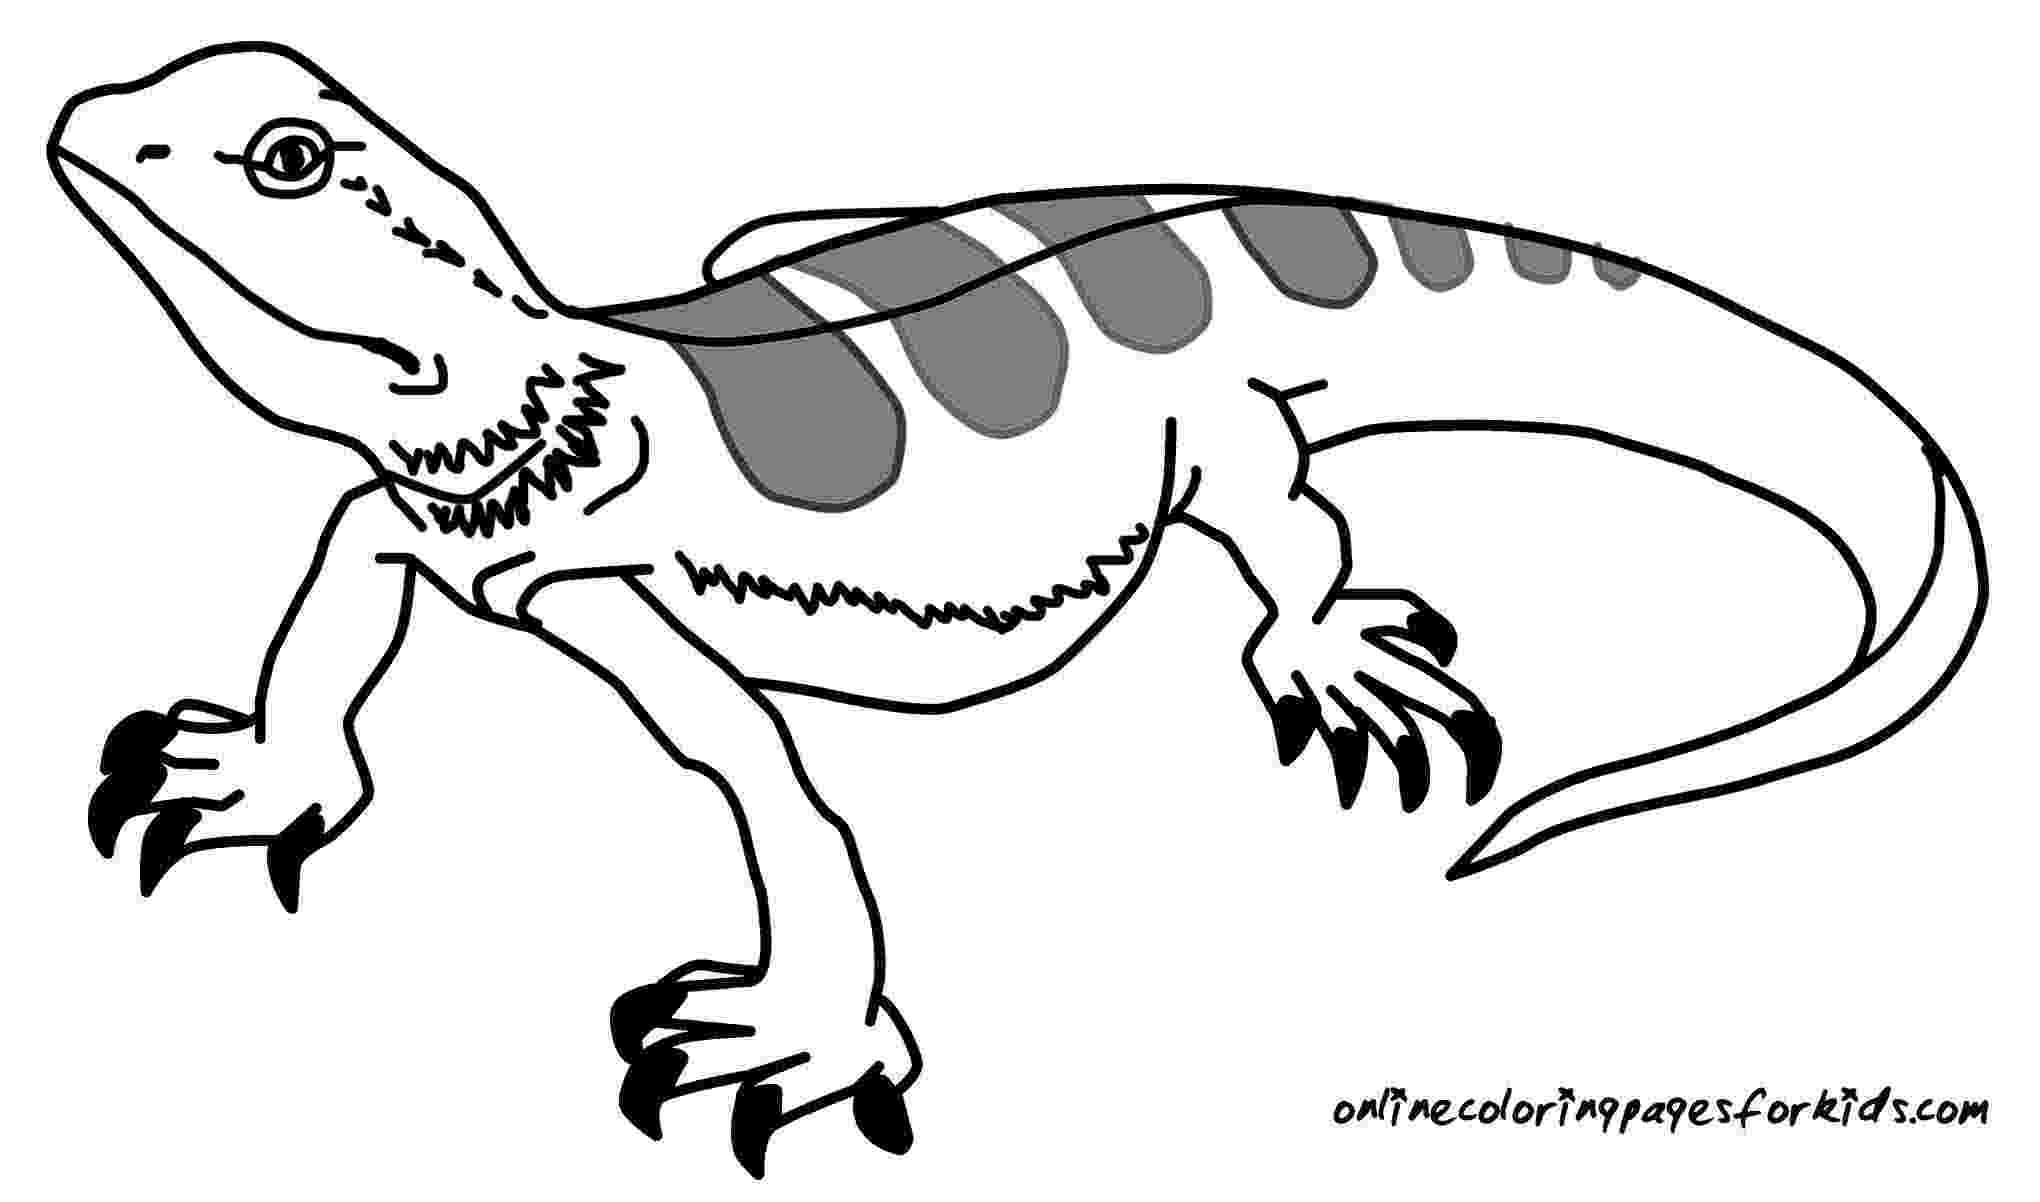 reptile coloring pages amphibian and reptile coloring pages pages coloring reptile